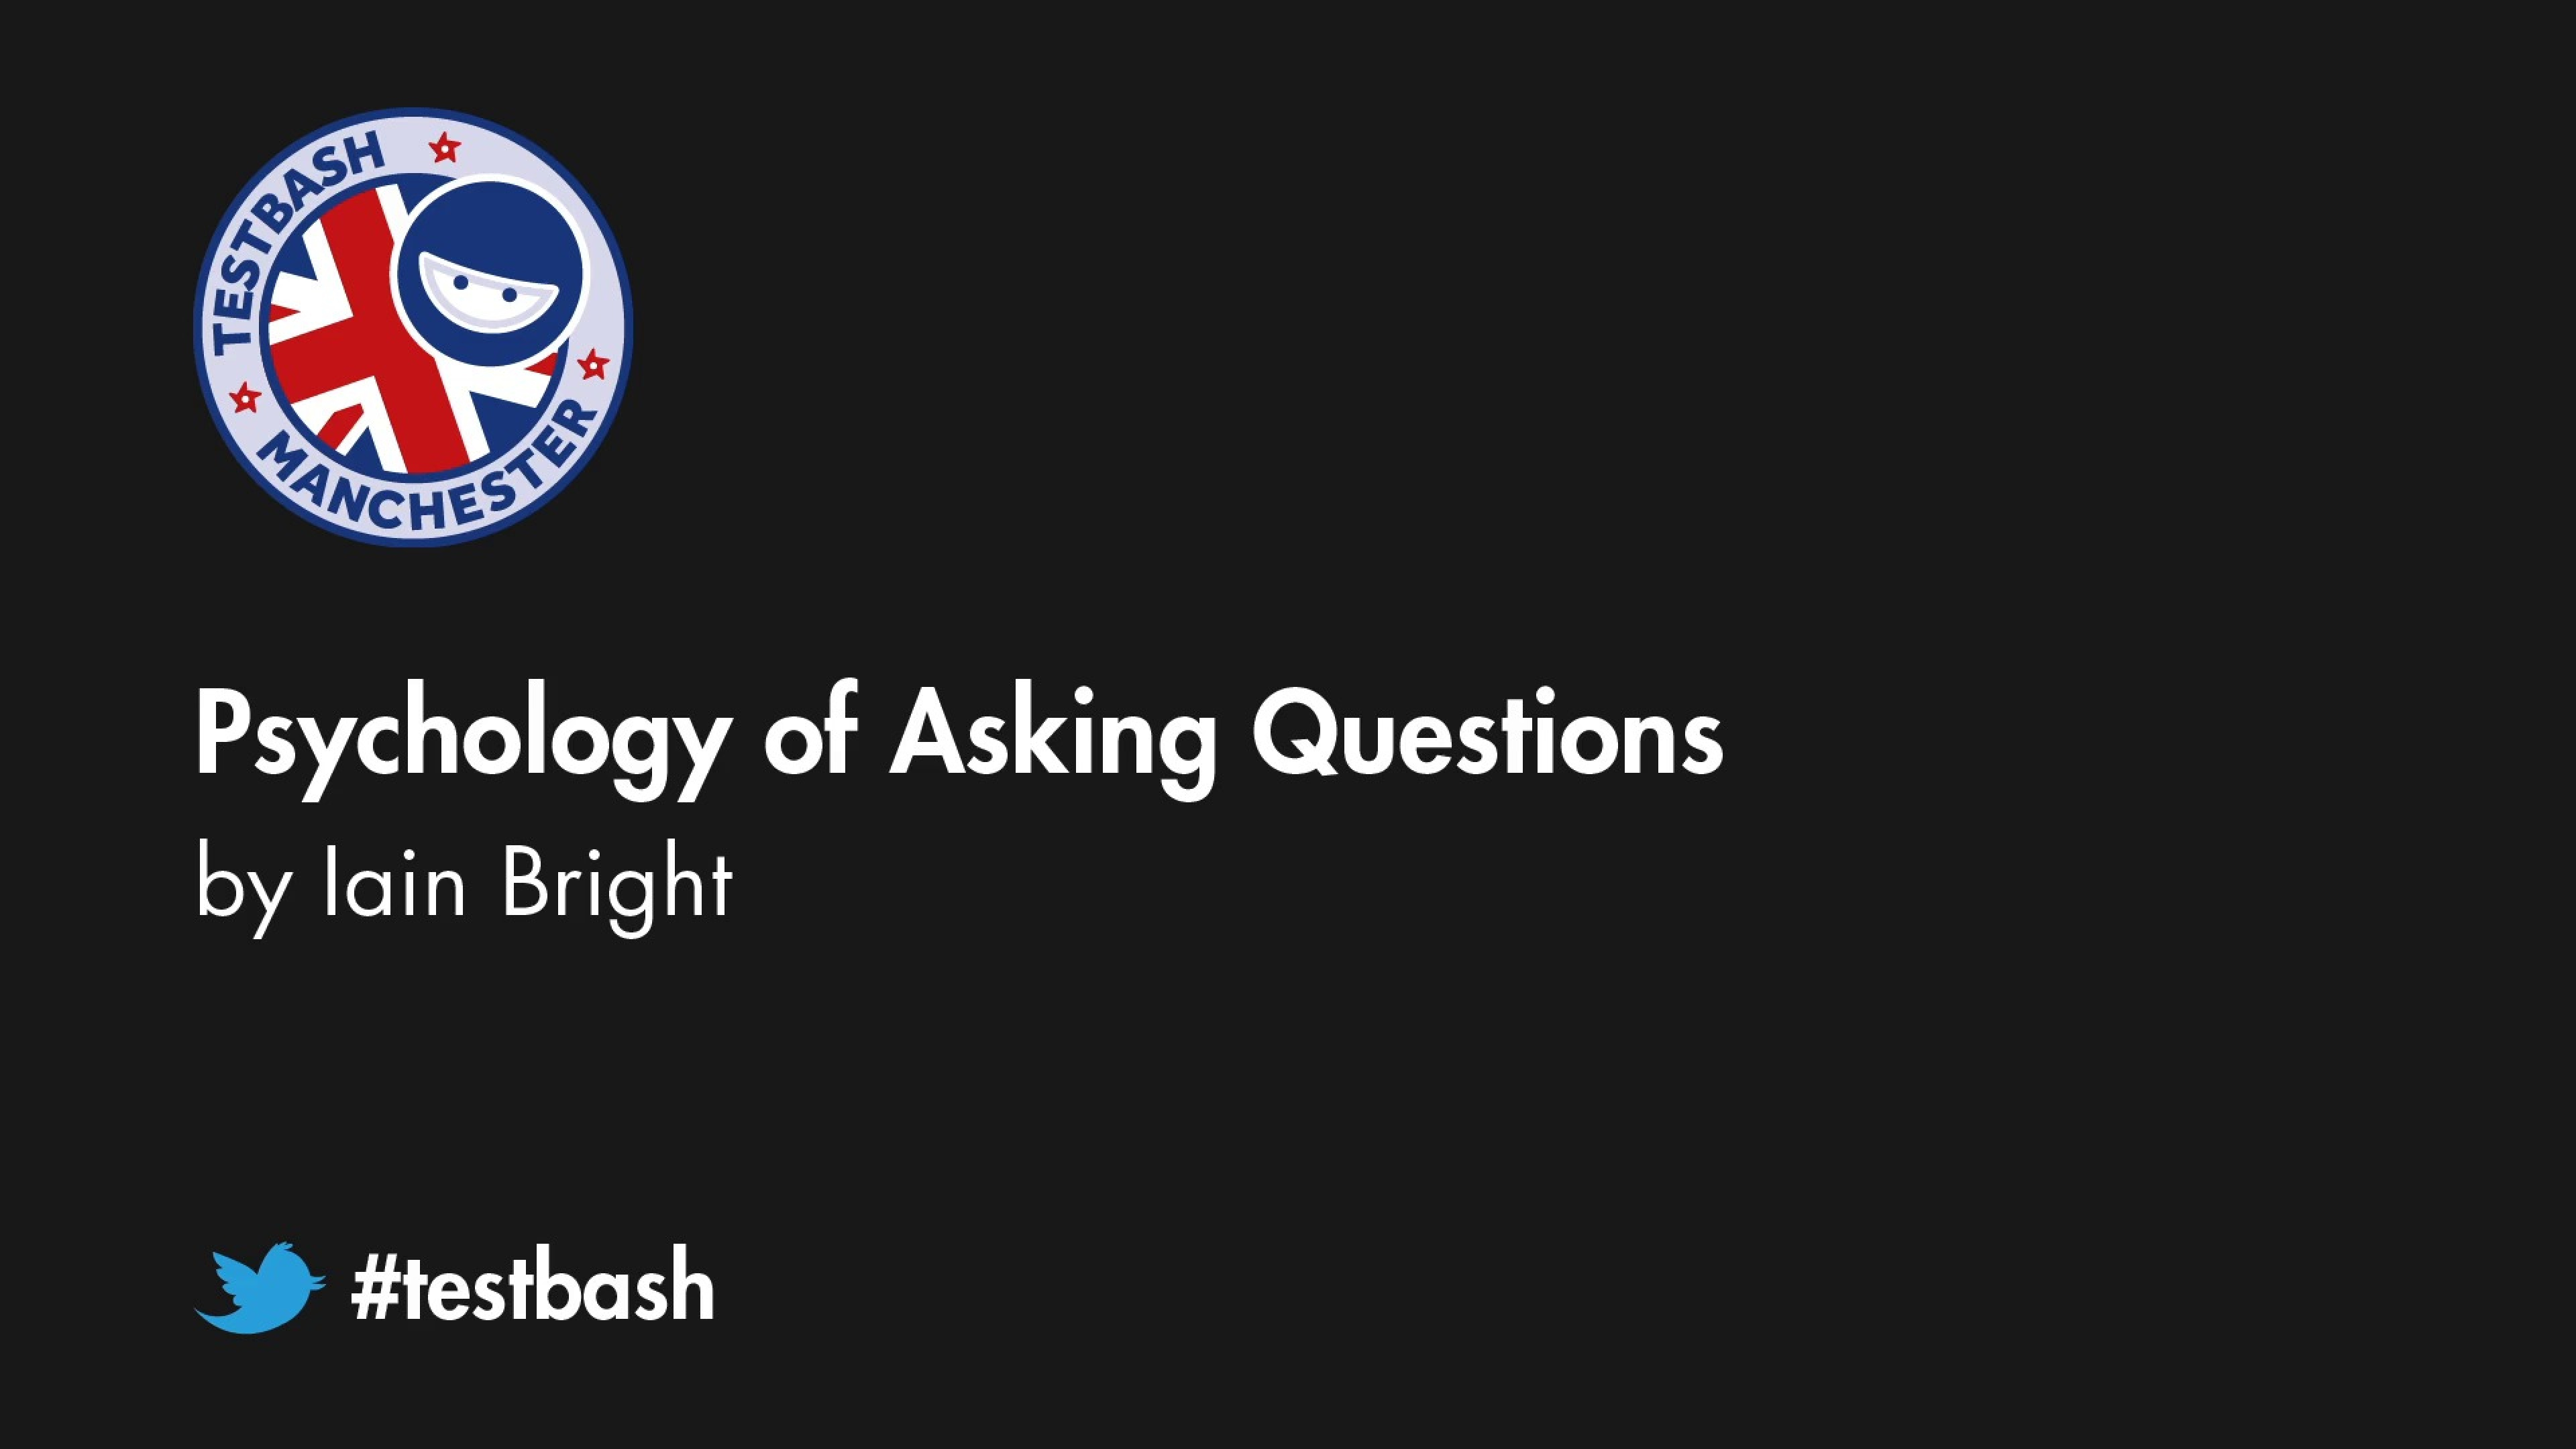 Psychology of Asking Questions – Iain Bright